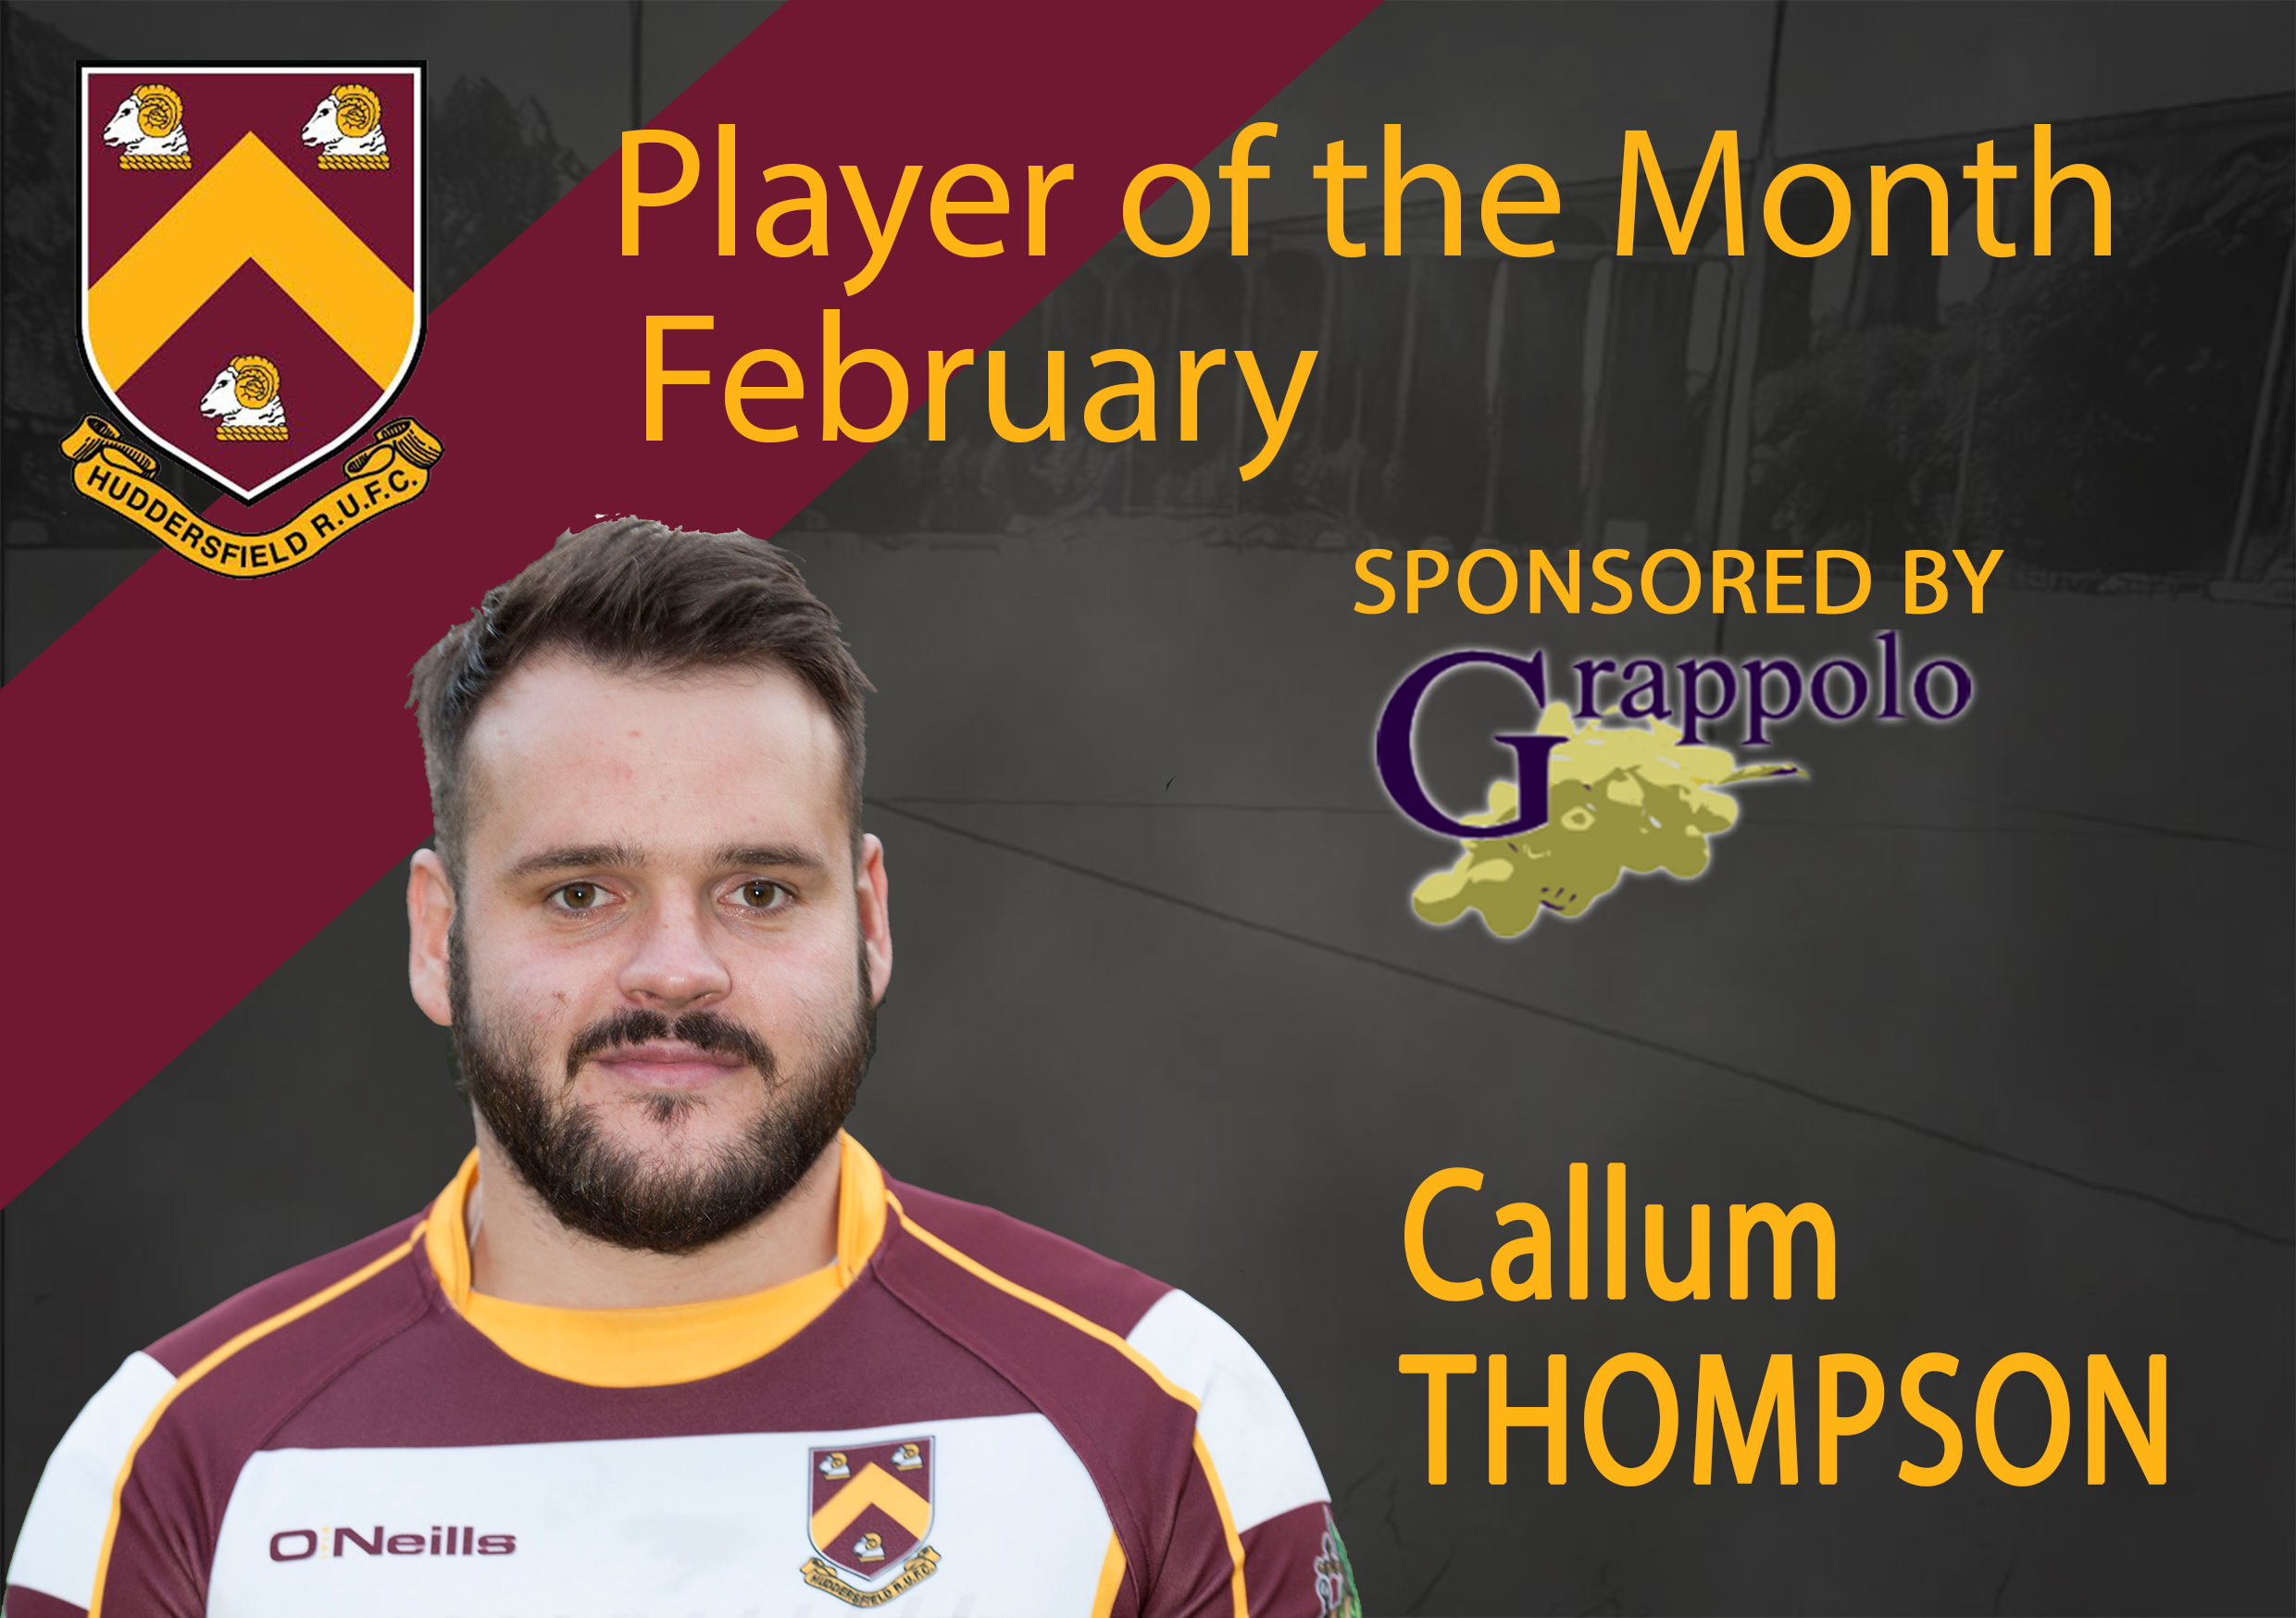 Player_of_the_Month_callum